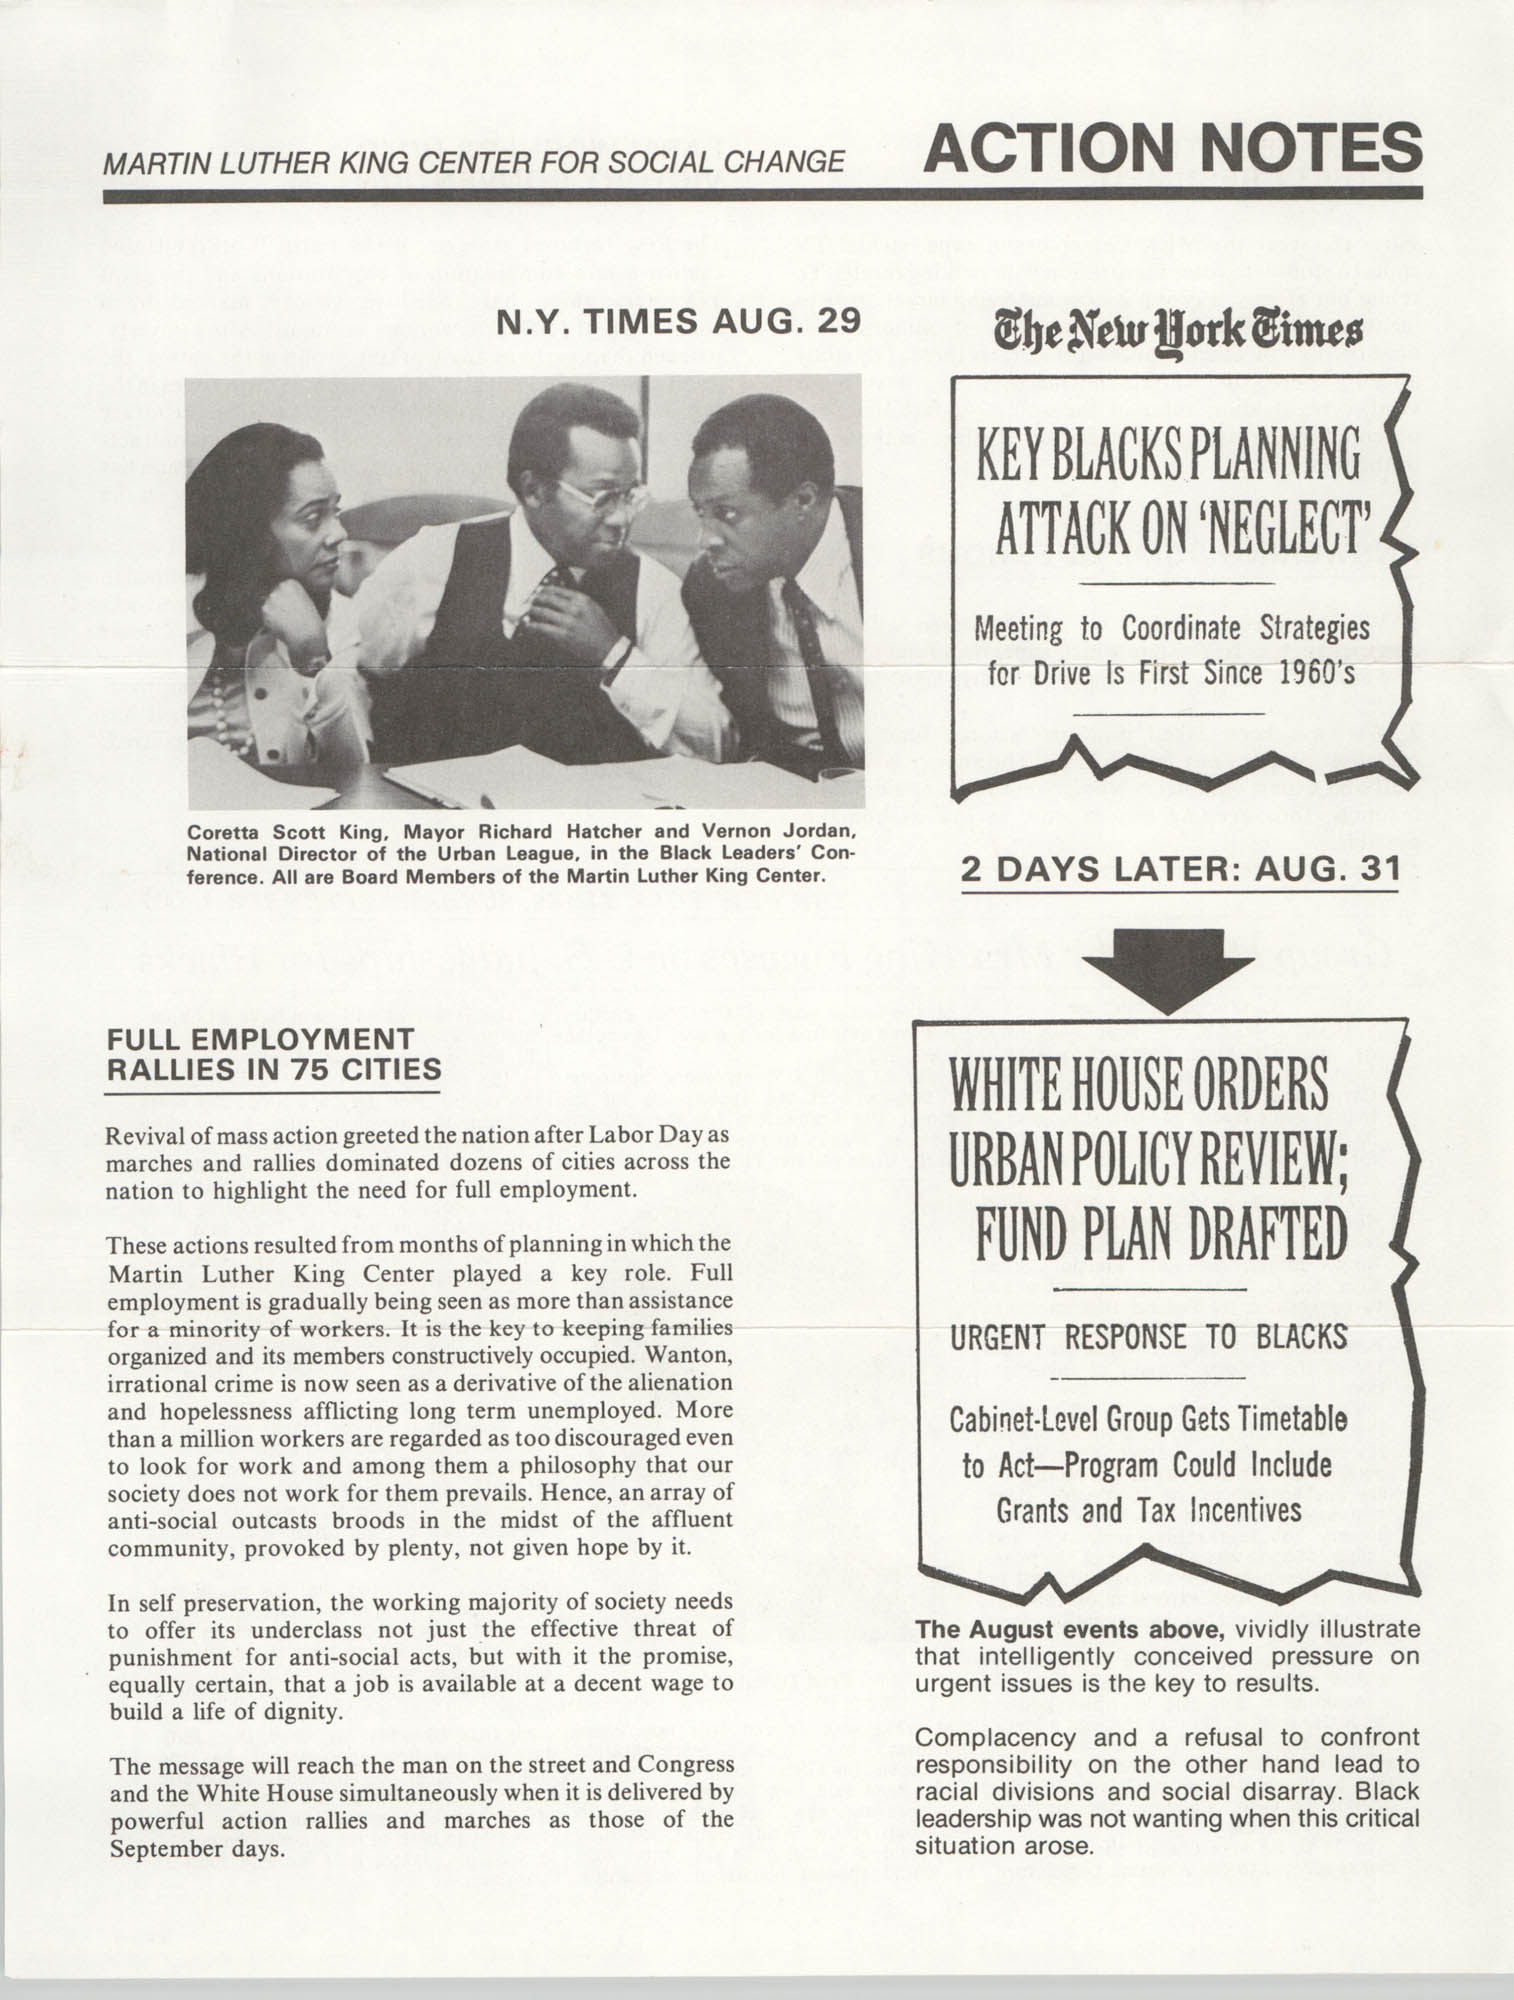 Martin Luther King Center for Social Change Action Notes, 1977